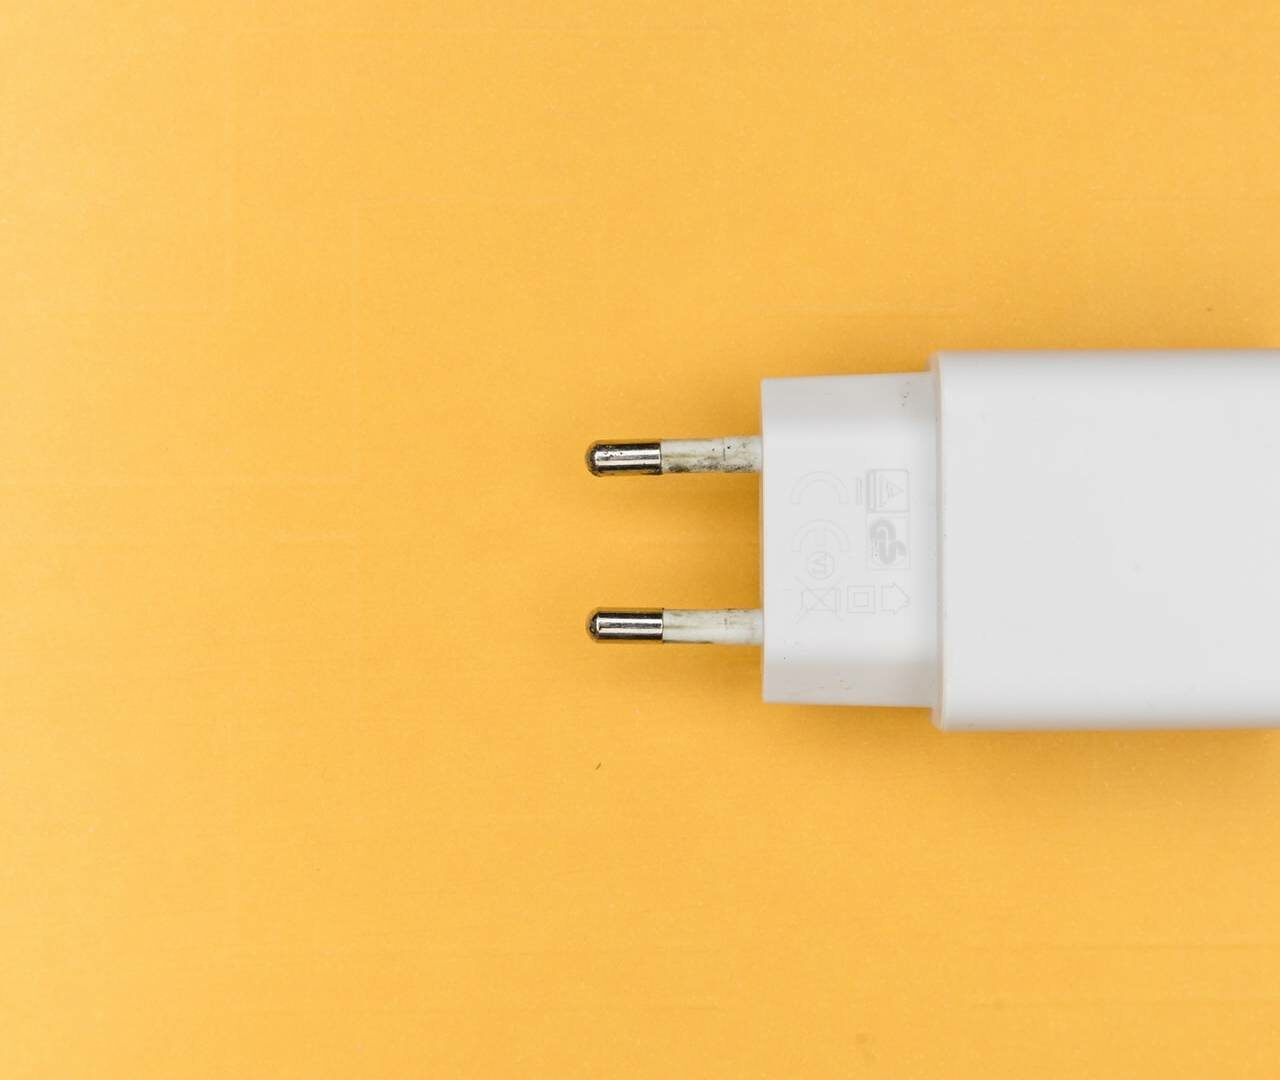 How to get staff to unplug from work: a guide for employers